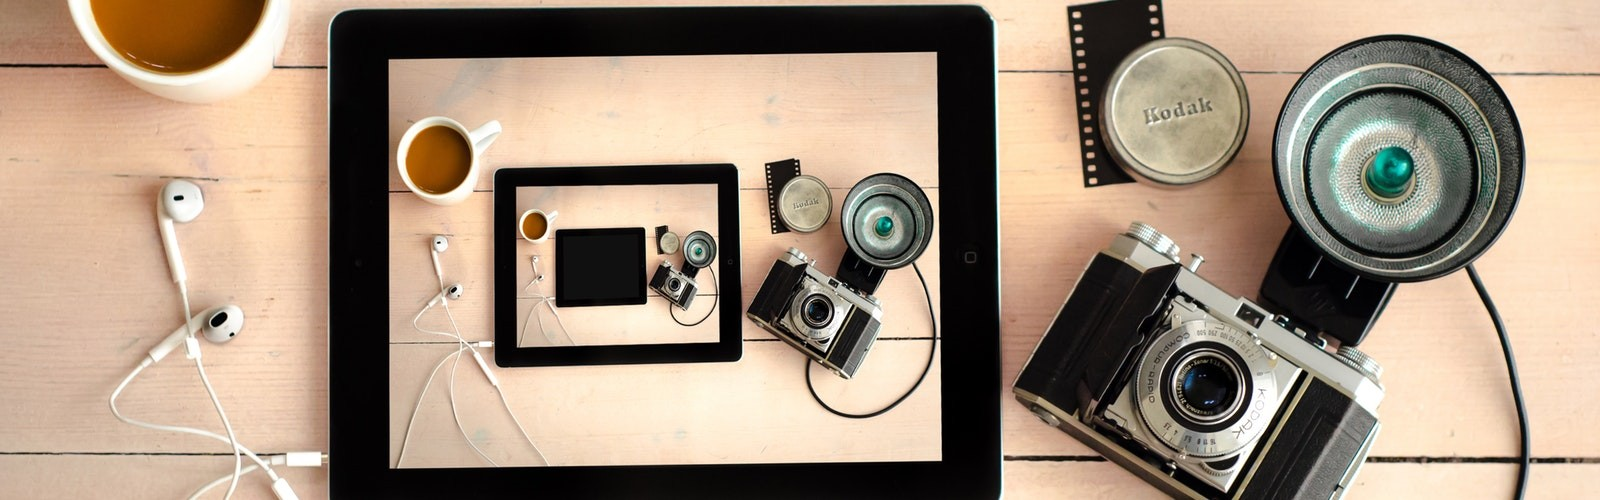 10 tips for photographers to grow their business quickly